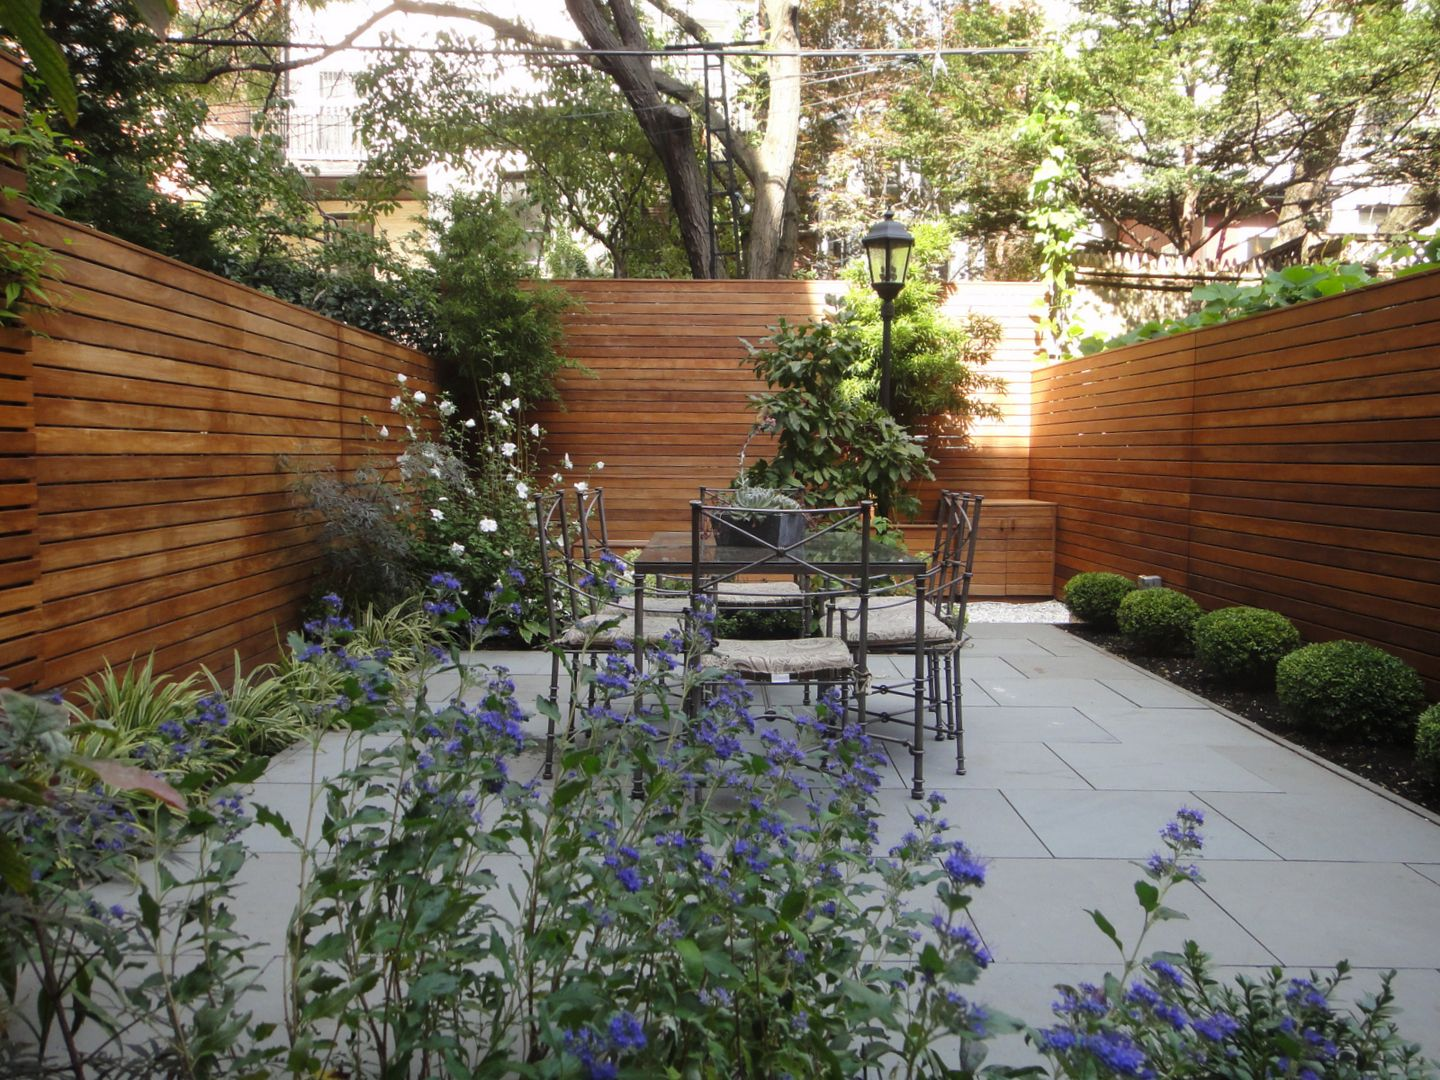 garden design garden landscaping - Garden Design Before And After